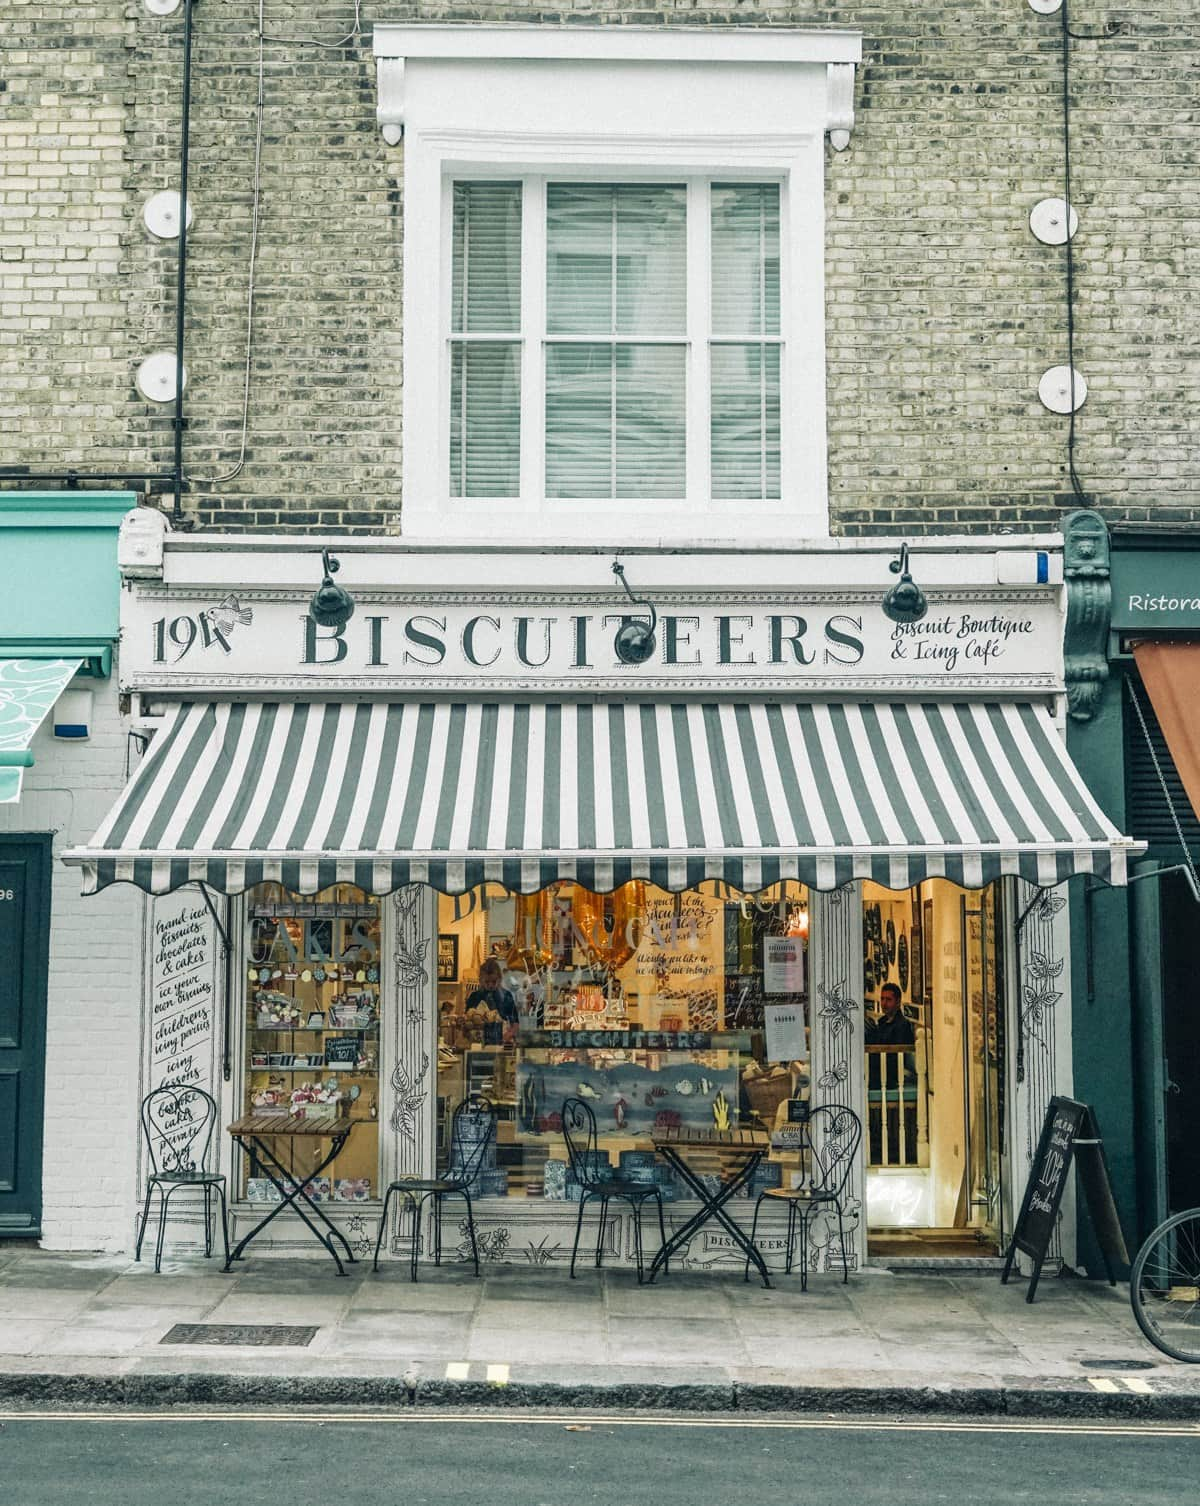 How to Spend 24 Hours in London: A Walking Tour Through the City's Coolest Spots